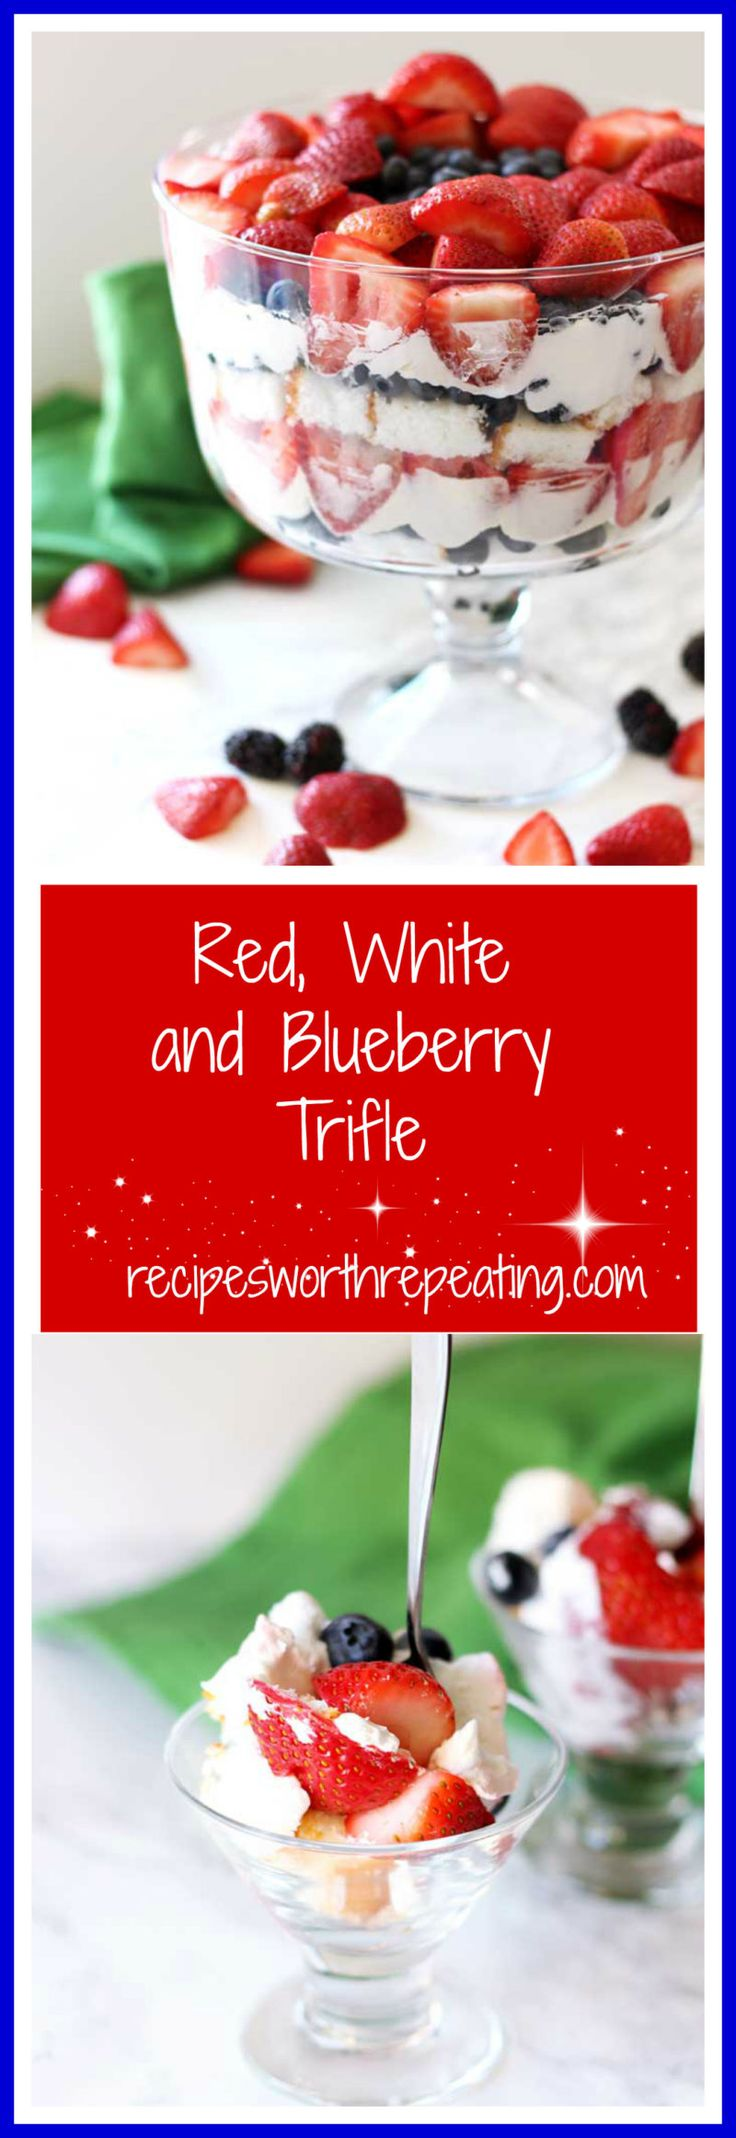 This Red, White and Blueberry Trifle is the most wonderful summer desserts! It's light in taste, simple to make and gorgeous! Get patriotic with this blueberries, strawberries and cheesecake whipped trifle treat!